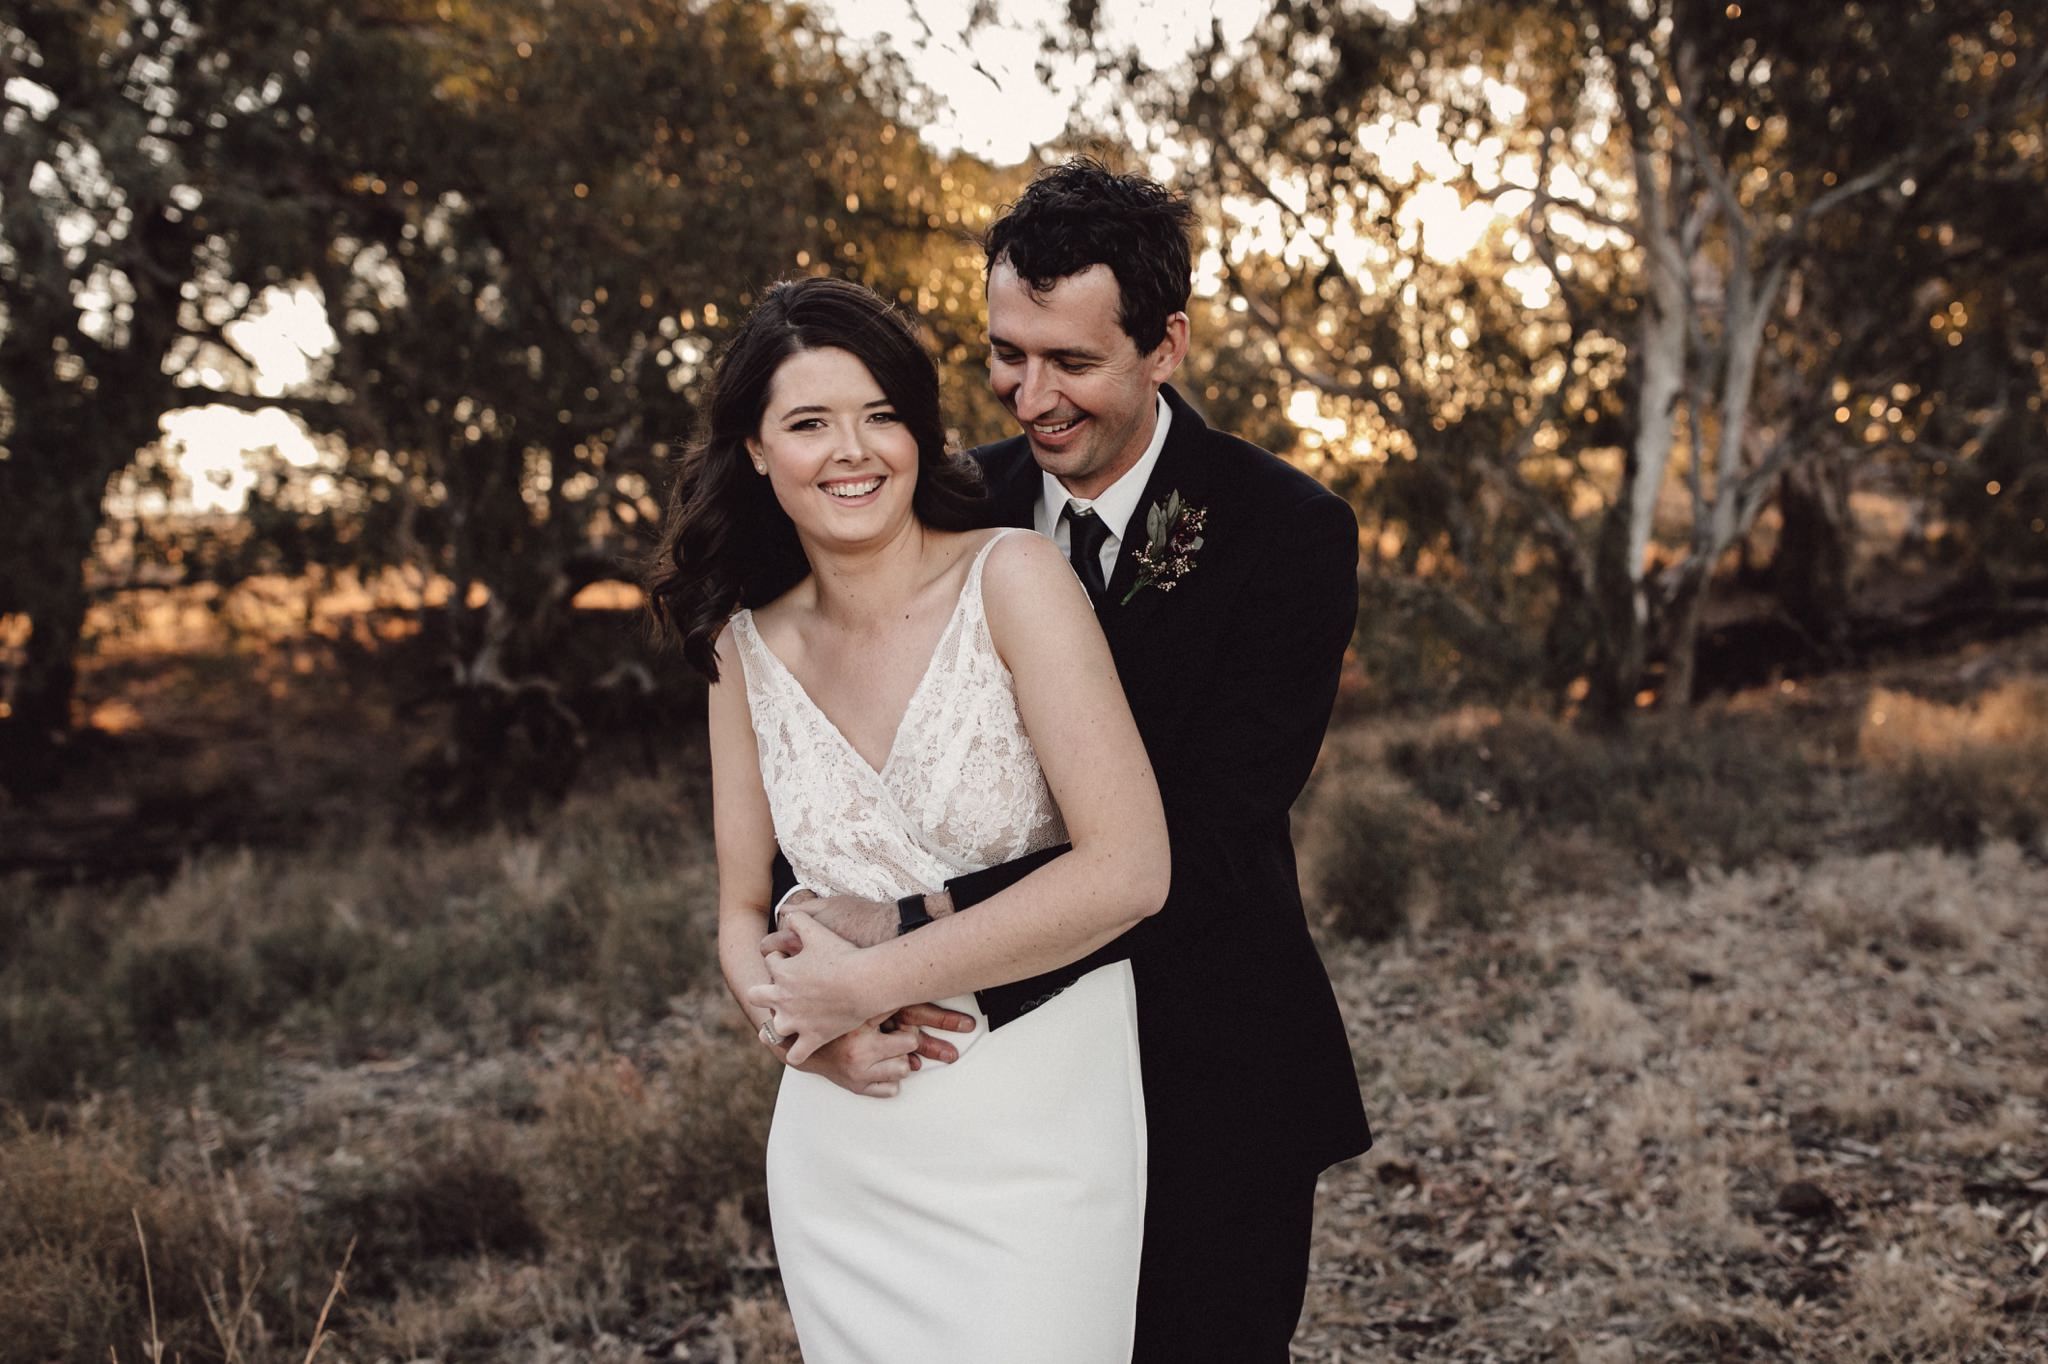 maleny, wedding photographer, sunshine coast wedding photography, gold coast, byron bay, country, outback, backyard, portraits